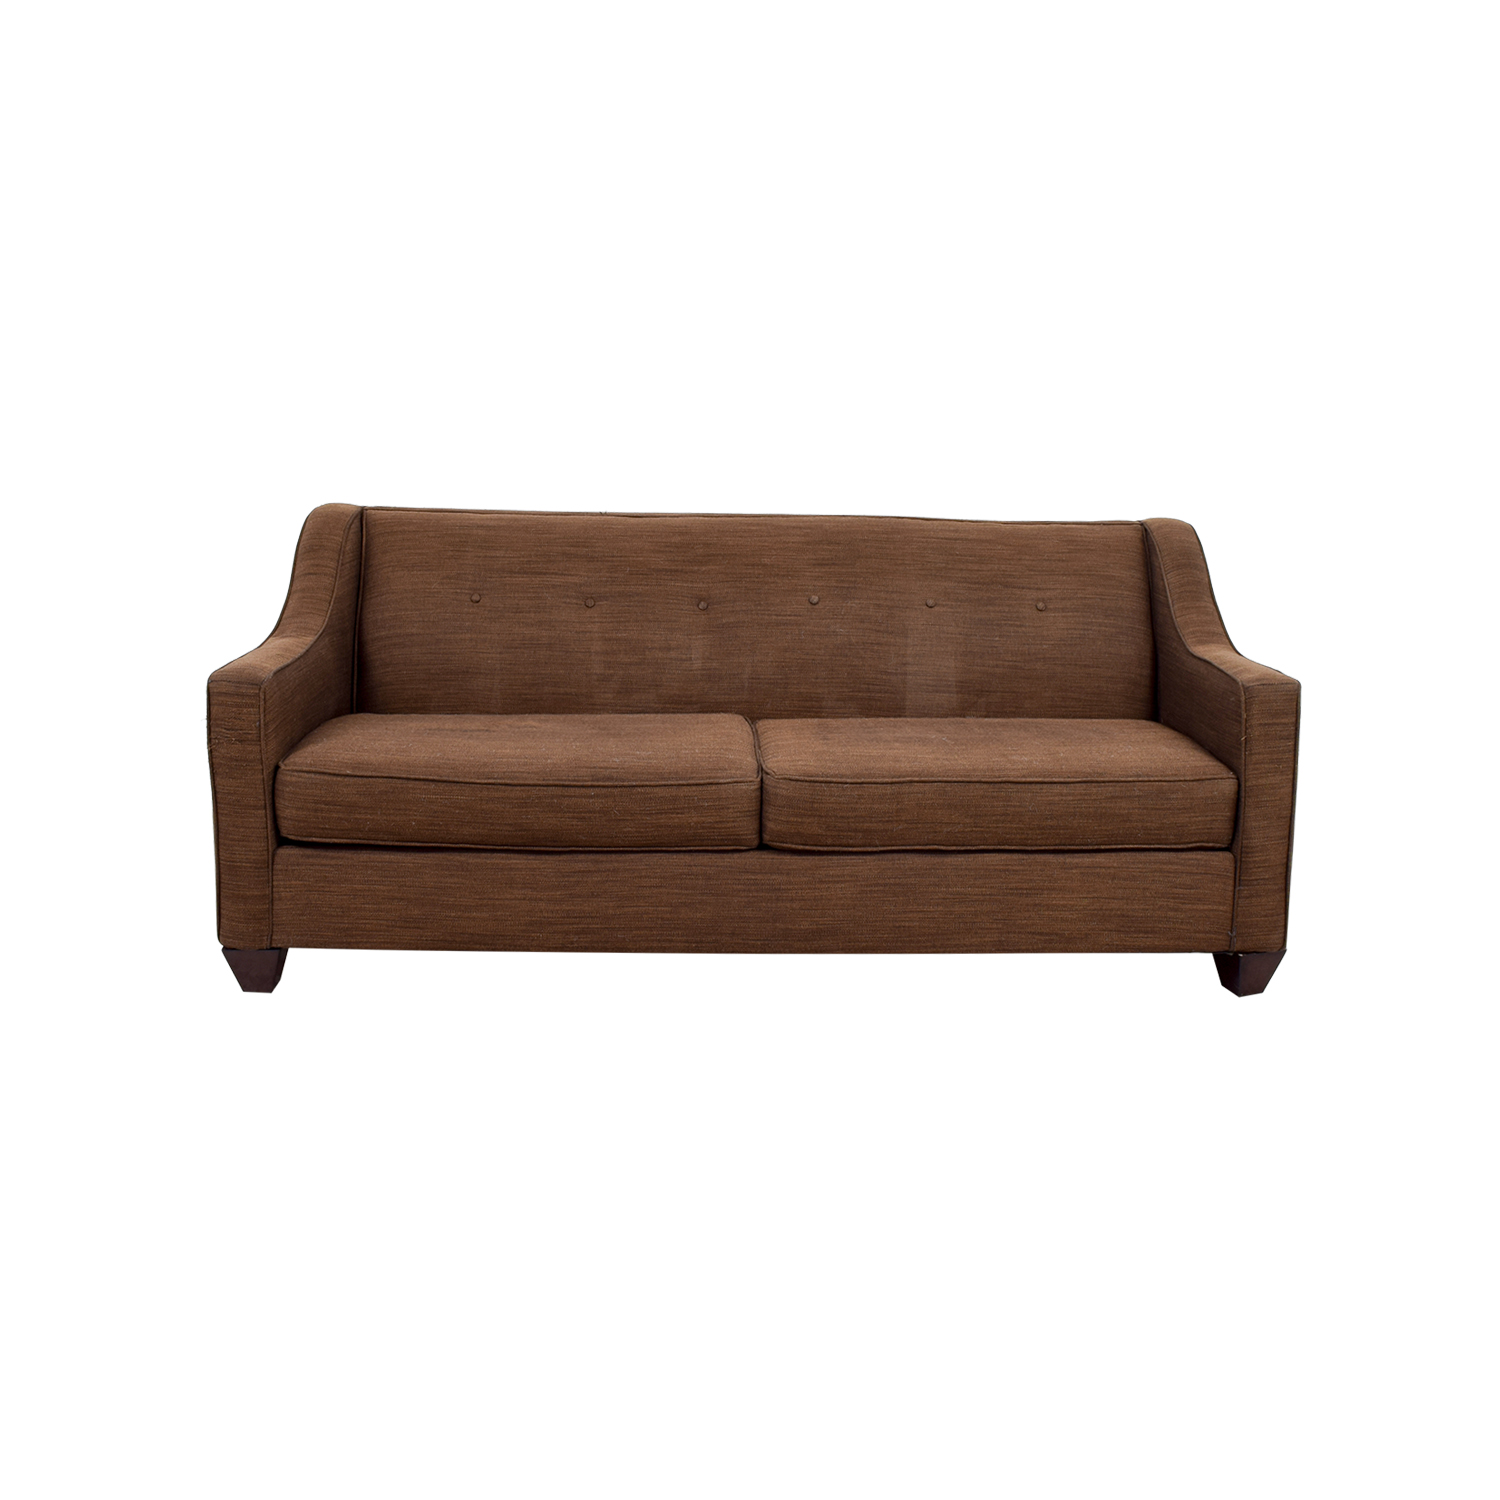 Two-Cushion Brown Slightly Tufted Couch second hand